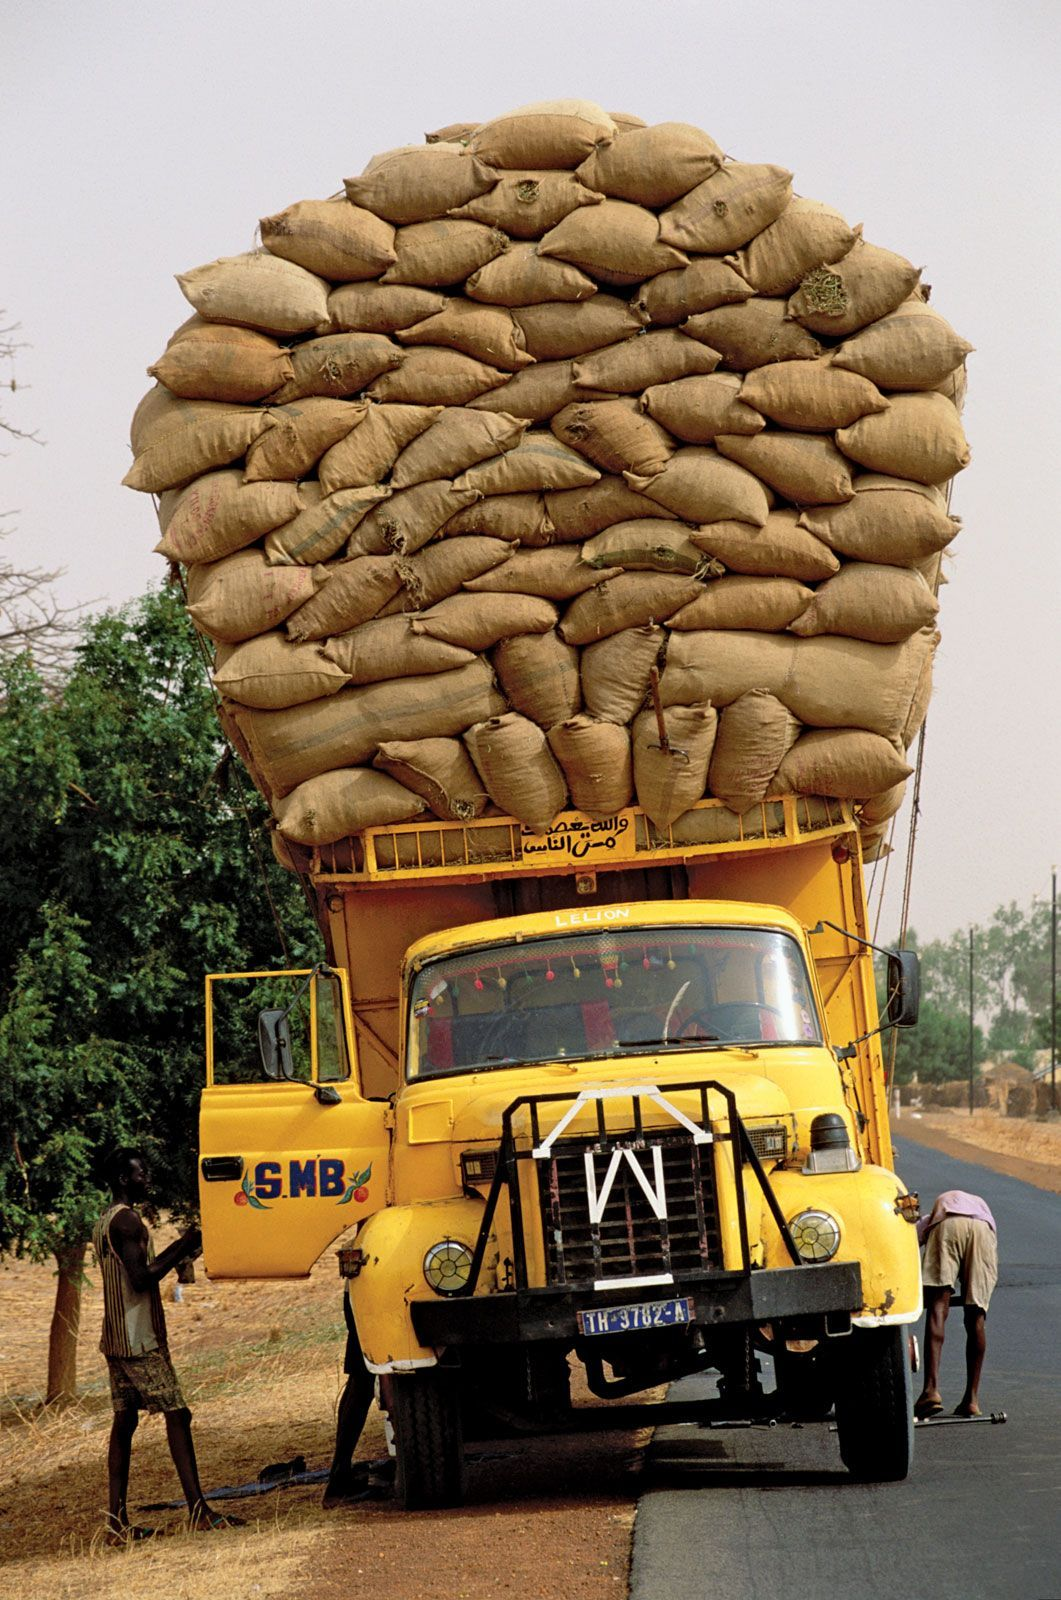 Peanut Delivery ,Senegal I found this one too. Africa